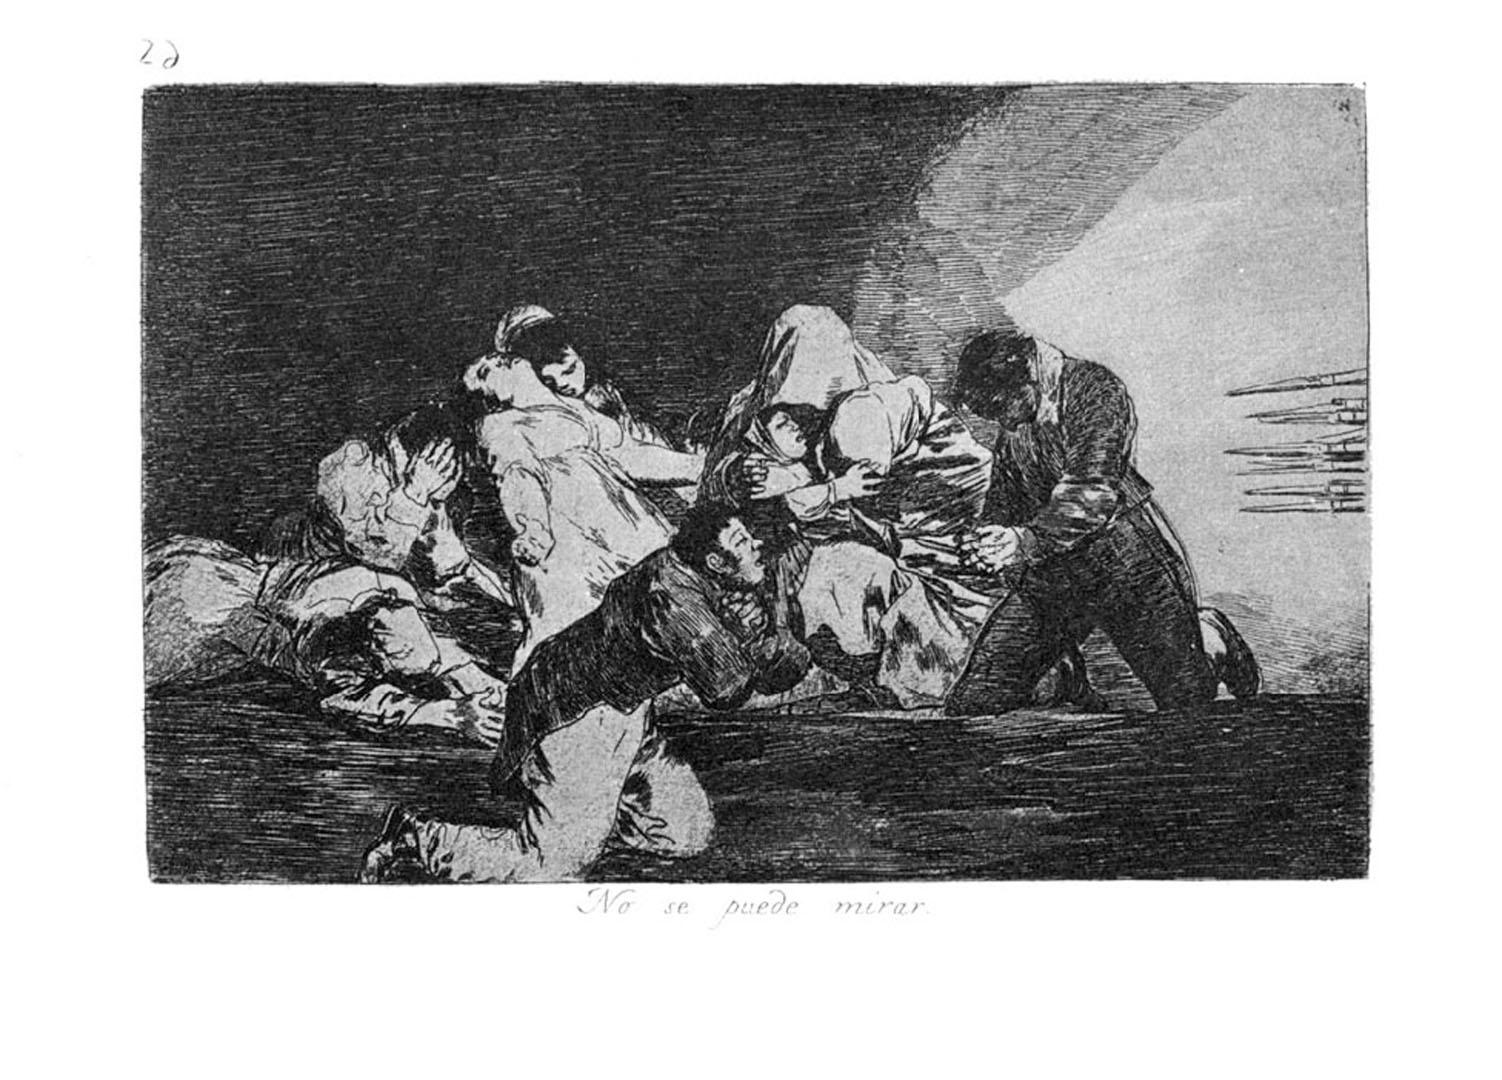 Goya-one-cannot-look-from-the-disasters-of-war-Гойя-Расстрел 2-ДЕЗАСТРОС